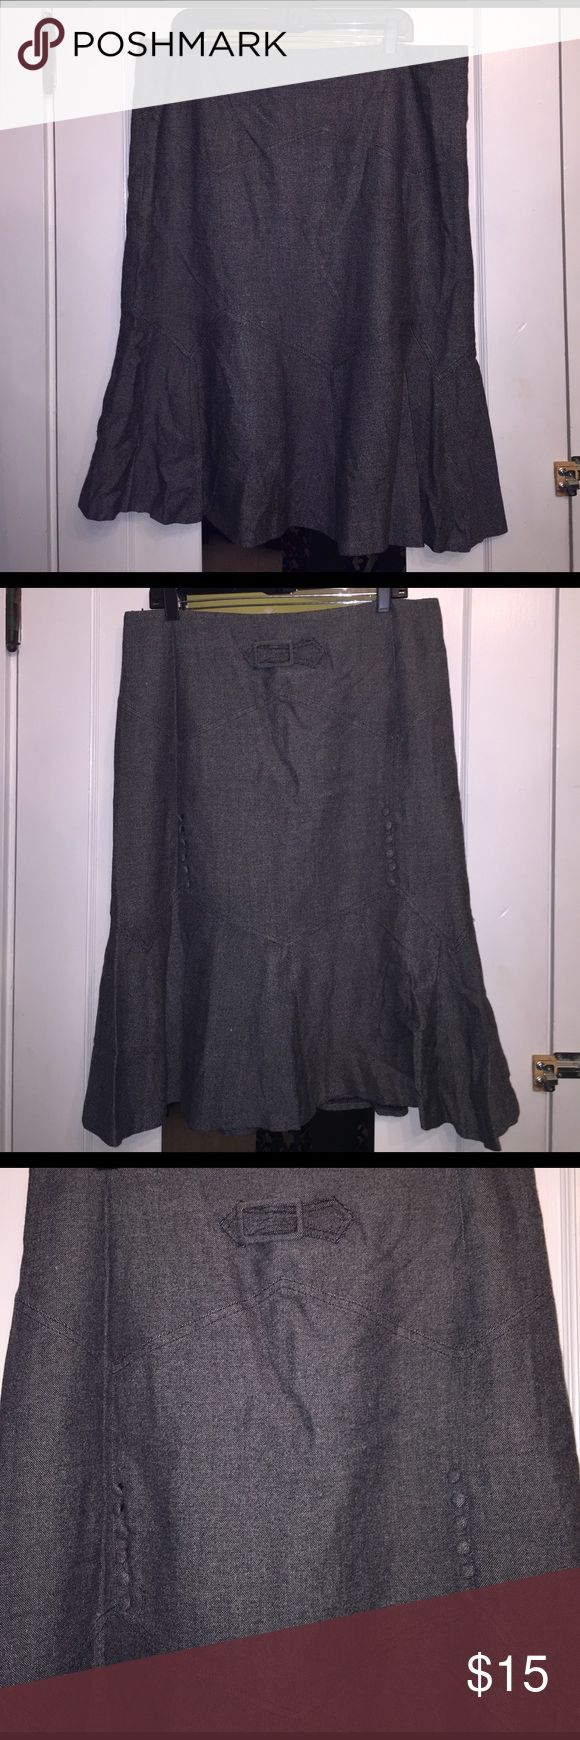 Plus Size wiggle skirt Sz 20 Plus Size wiggle skirt Sz 20. Florence hem and super sexy back detail. Put your hair in a bun, a red side tie Blouse and some heels 👠.....honey. That has naughty secretary written all over it.  26'in long. Excellent Condition. Metro Style Skirts Midi